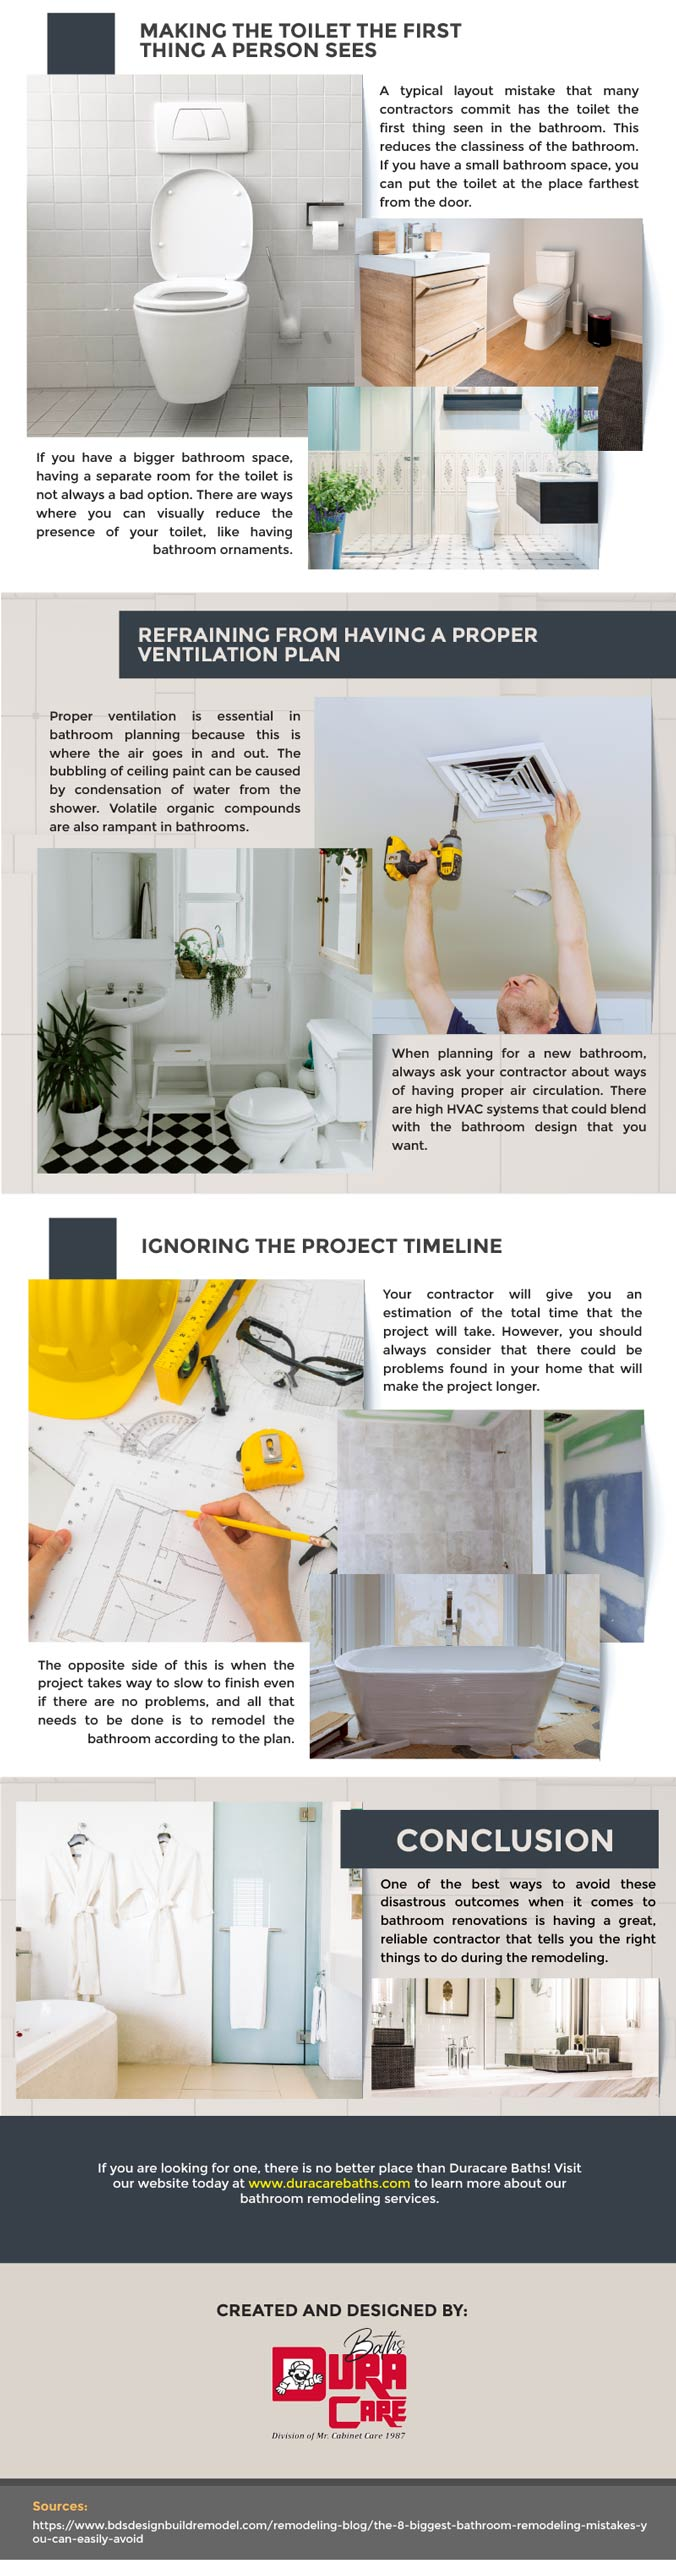 Infographic: Top 5 bathroom remodeling mistakes 8